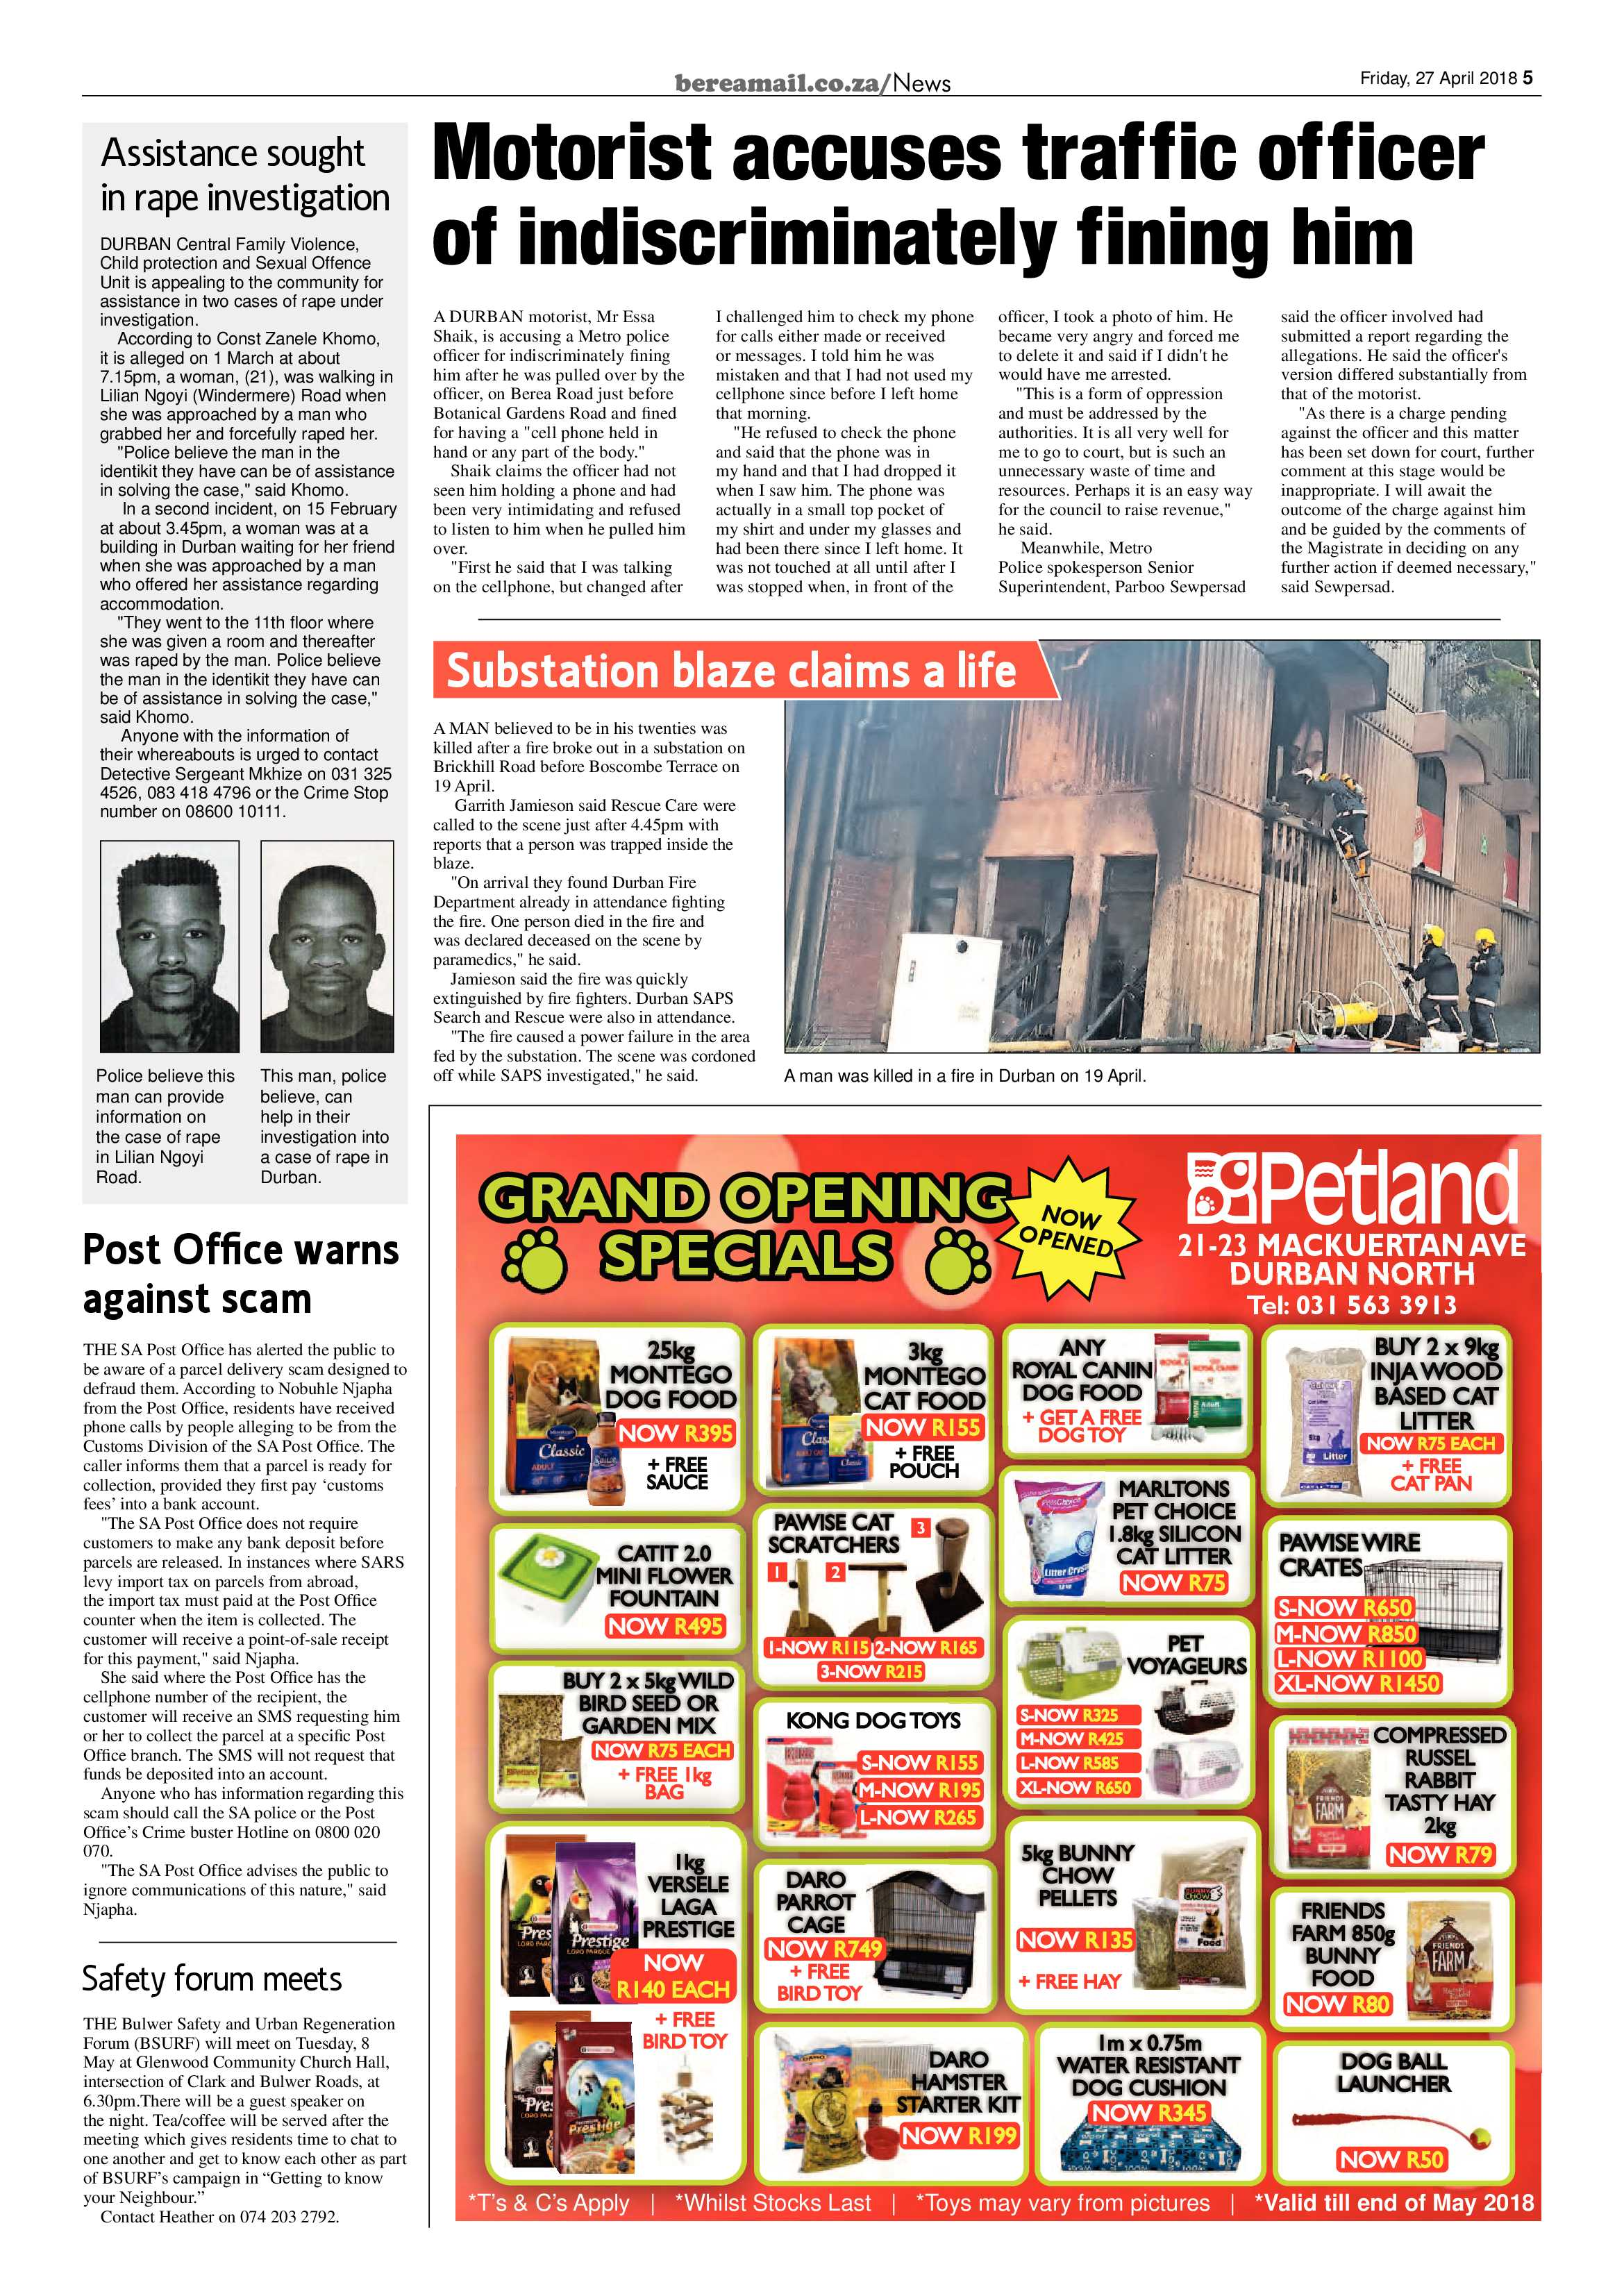 berea-mail-27-april-2018-epapers-page-5